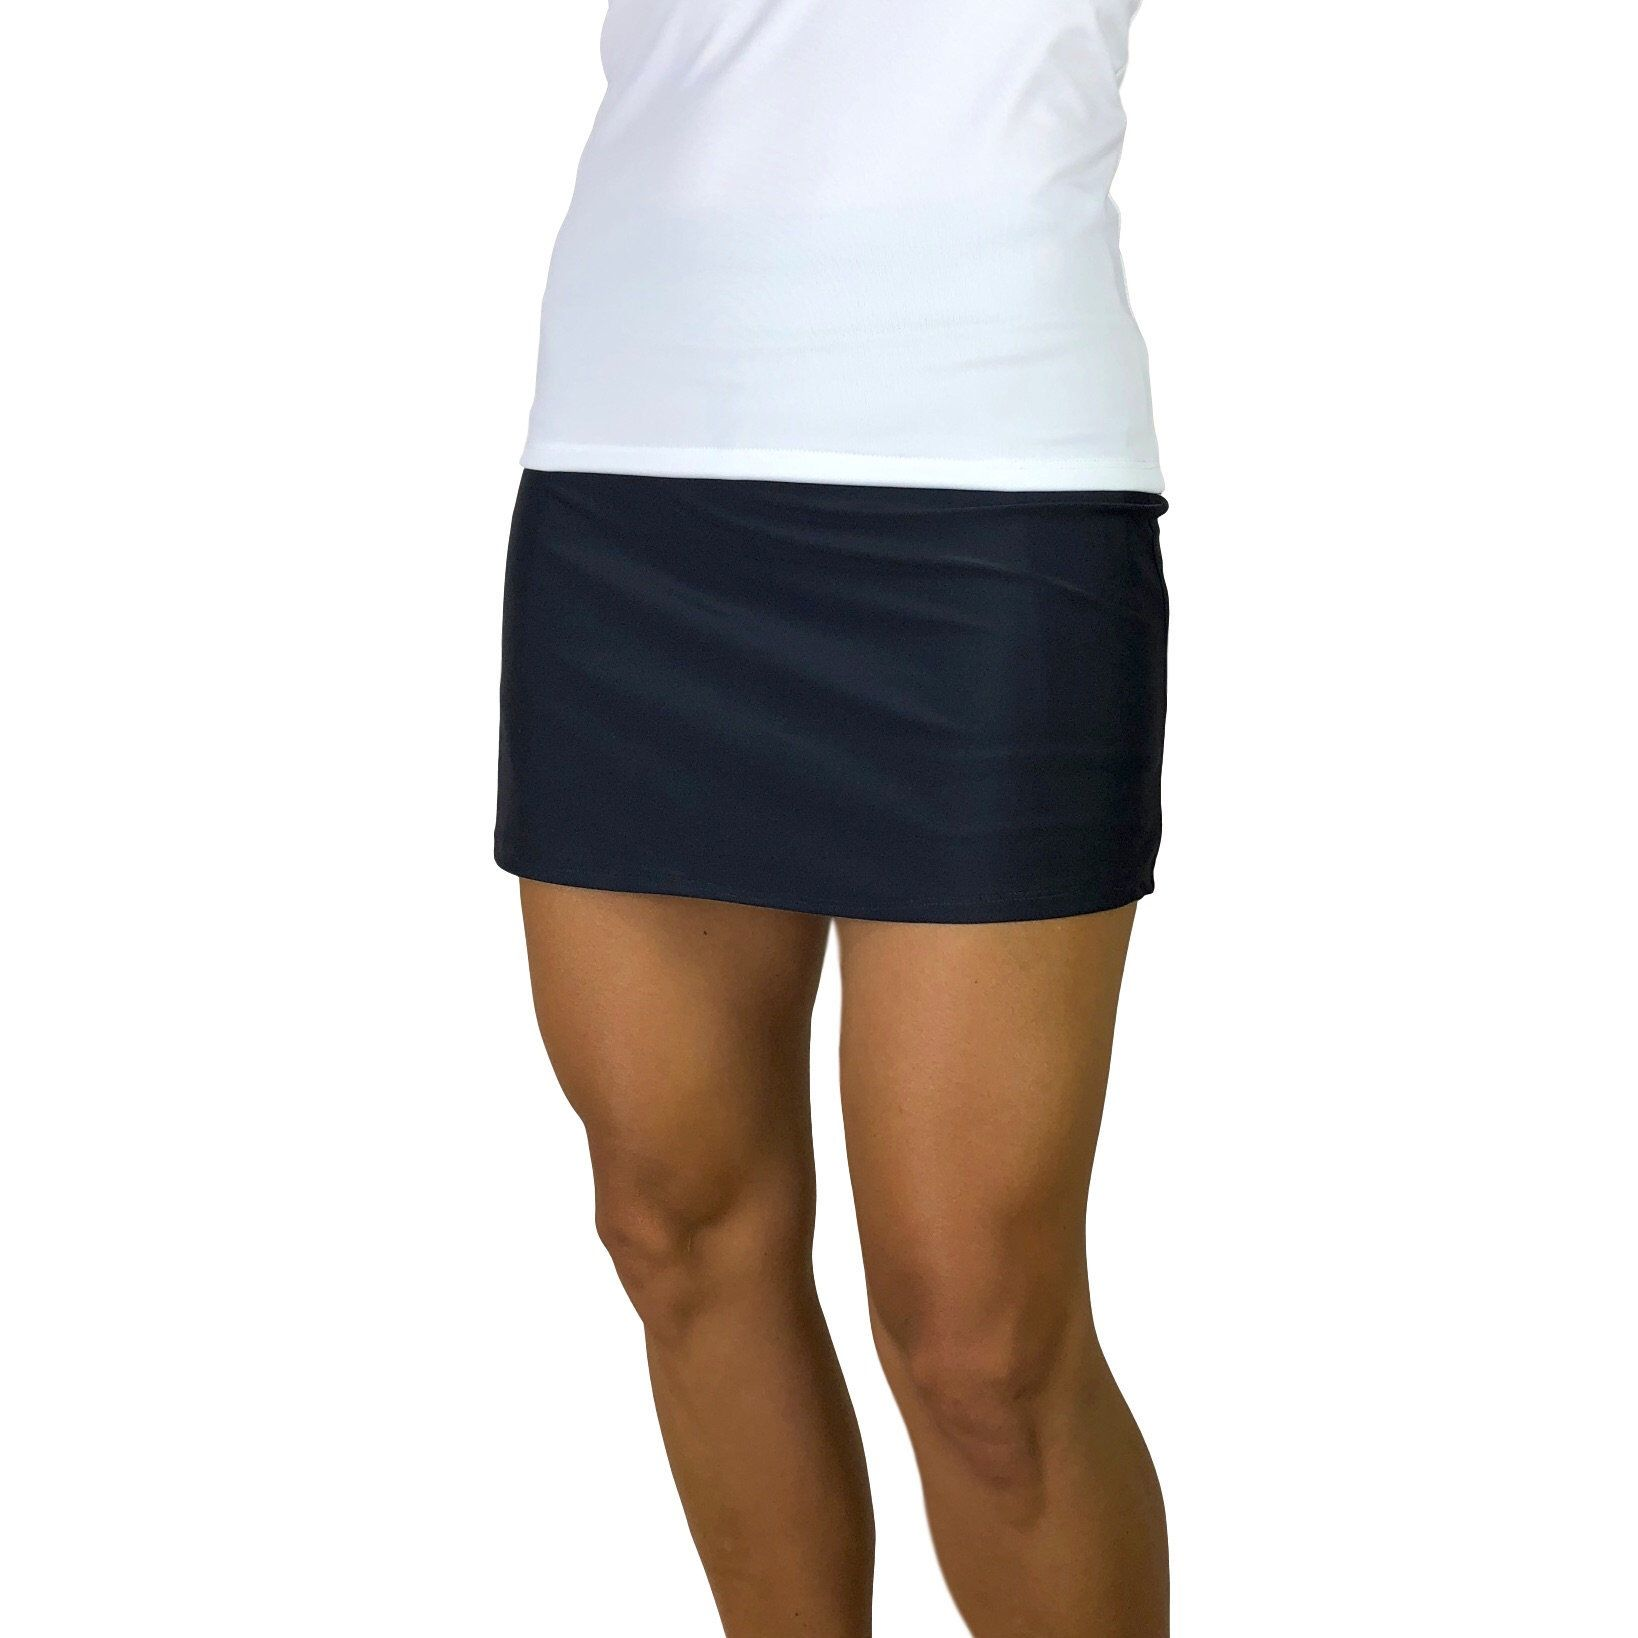 Tennis Skirts With Pockets Ficts